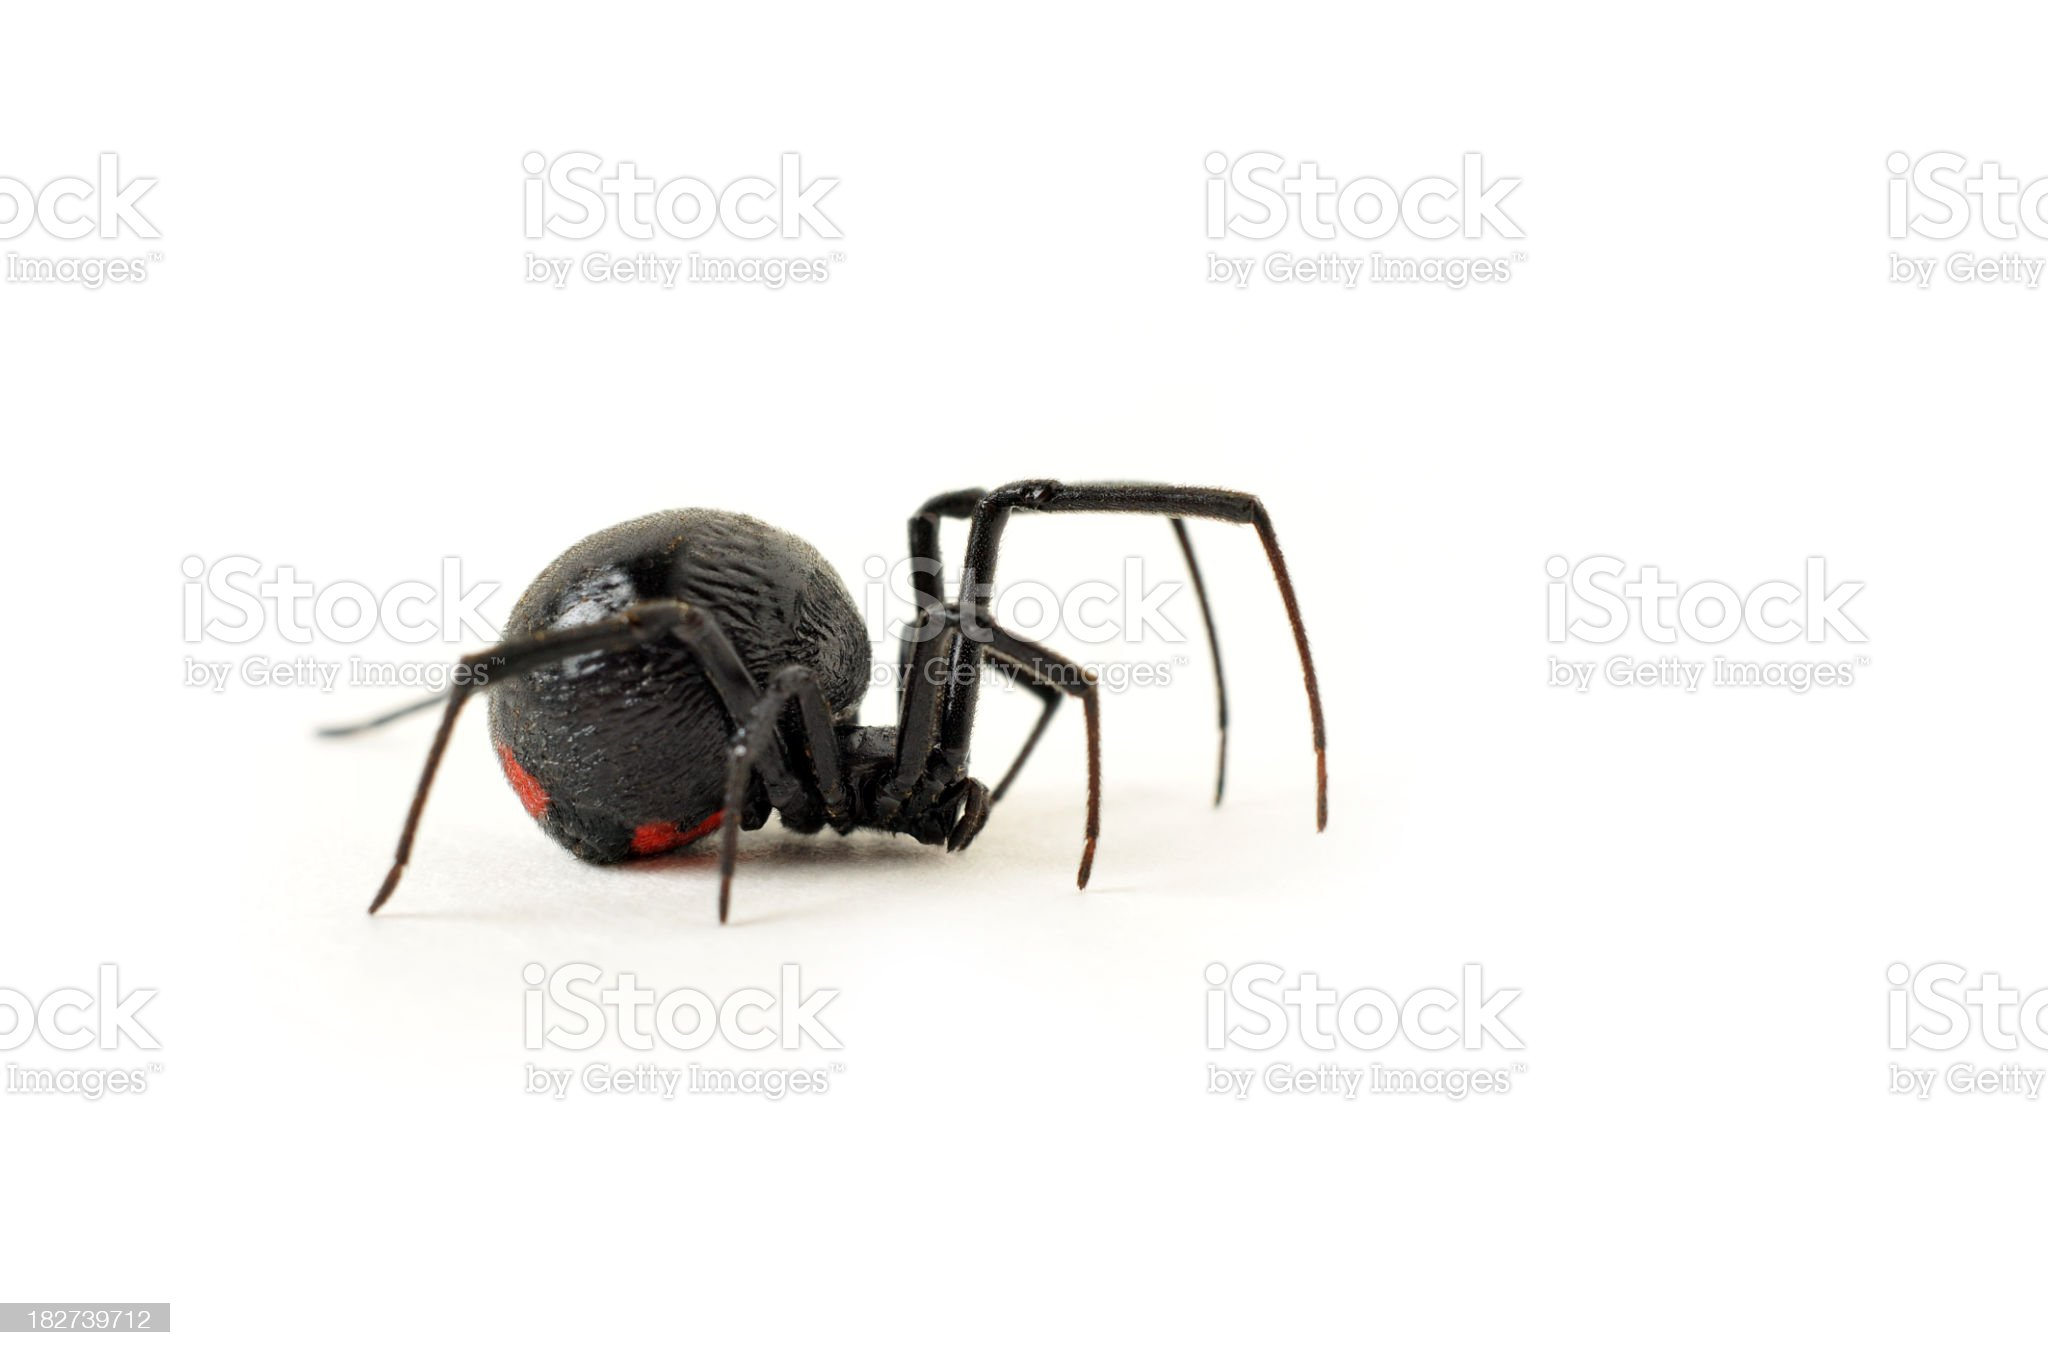 Black Widow Spider Creeping Across a White Background royalty-free stock photo